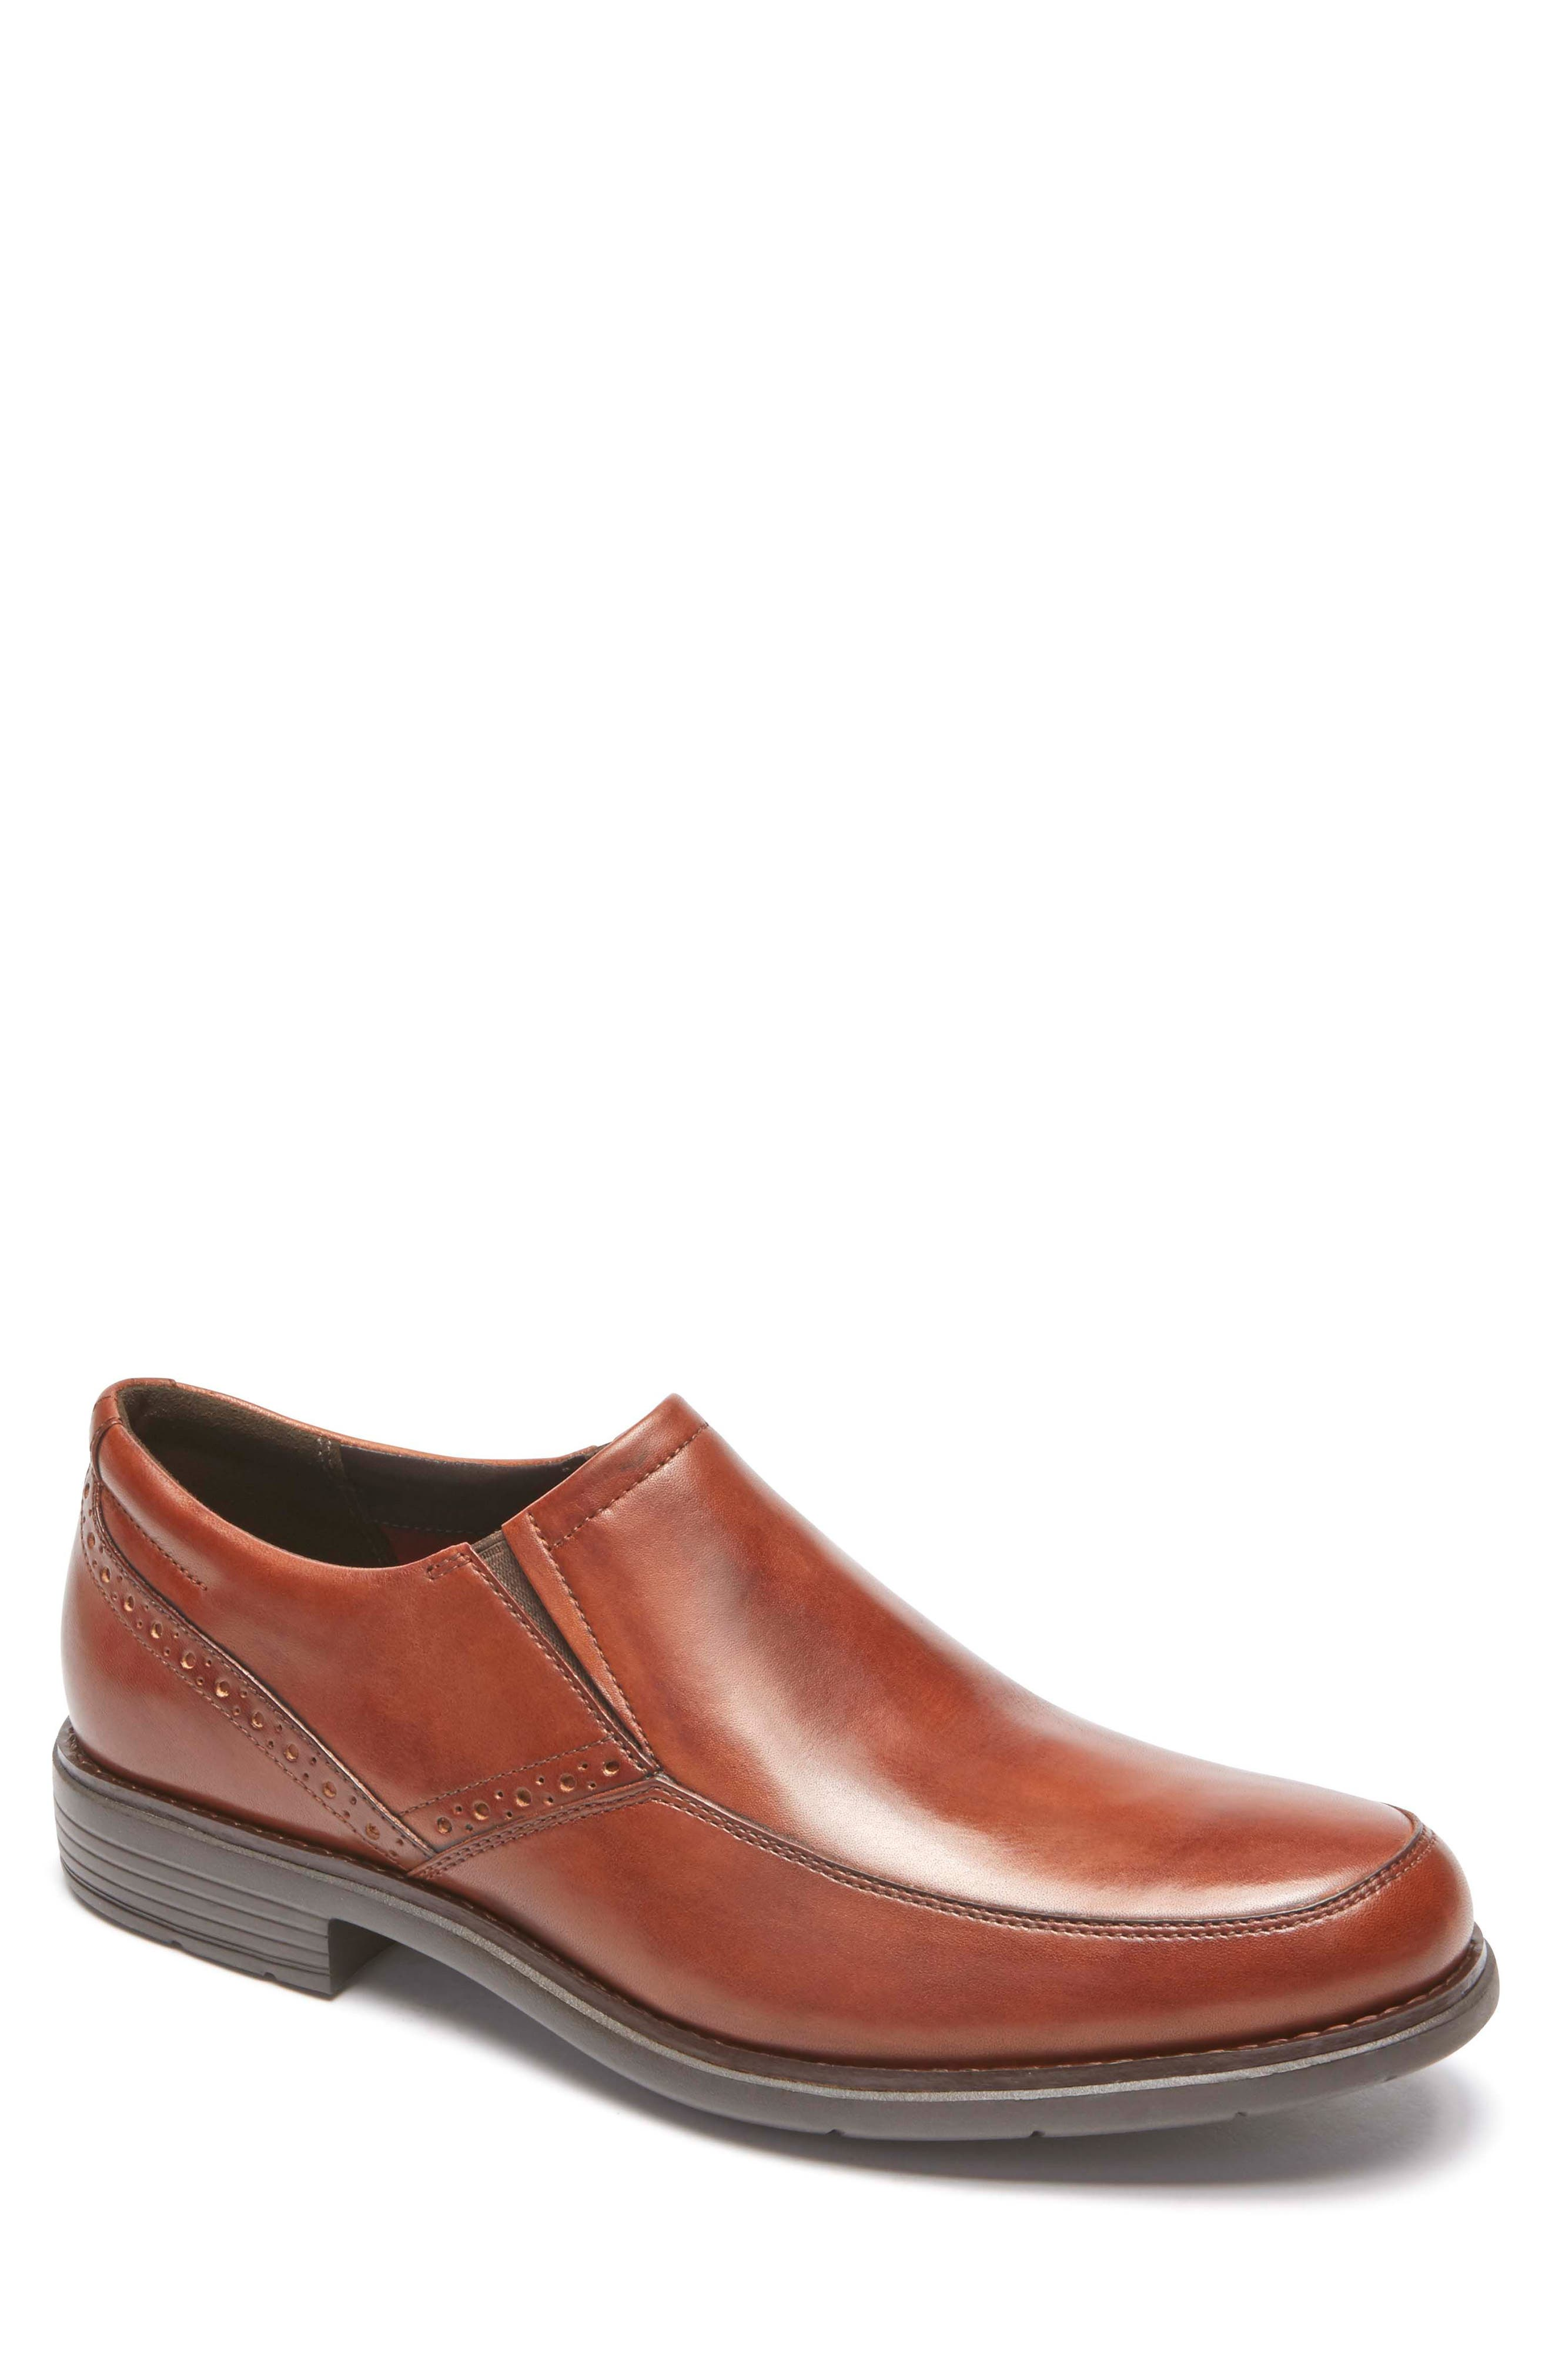 Total Motion Classic Dress Venetian Loafer,                             Main thumbnail 1, color,                             Tan Leather